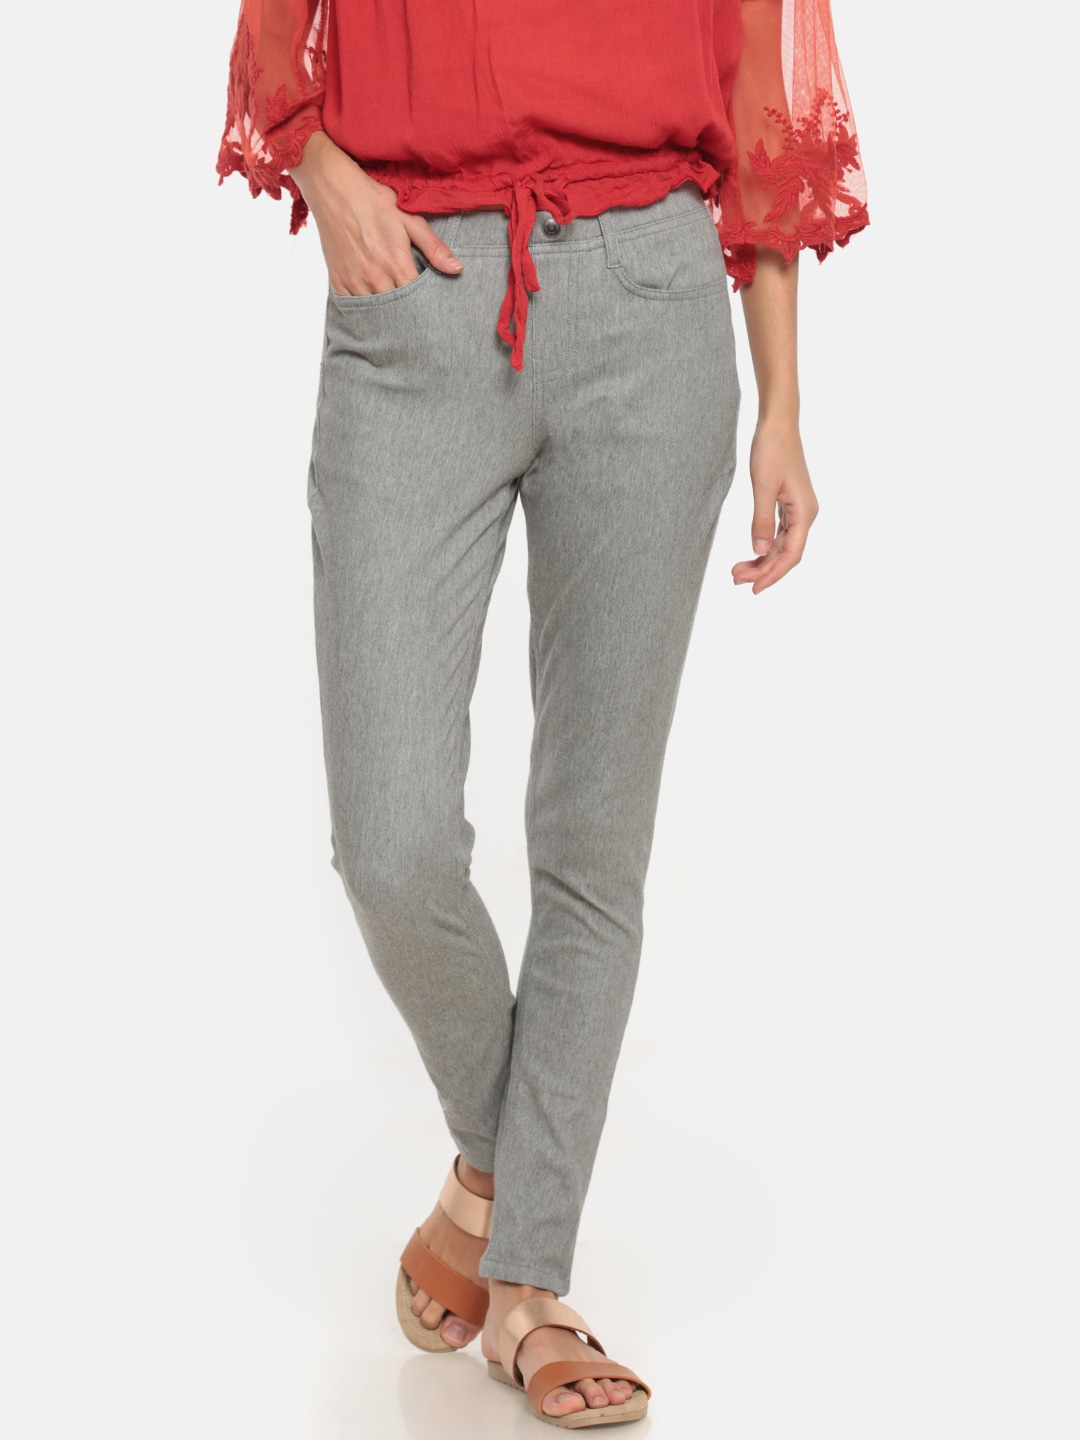 Go Colors Grey Solid Jeggings image